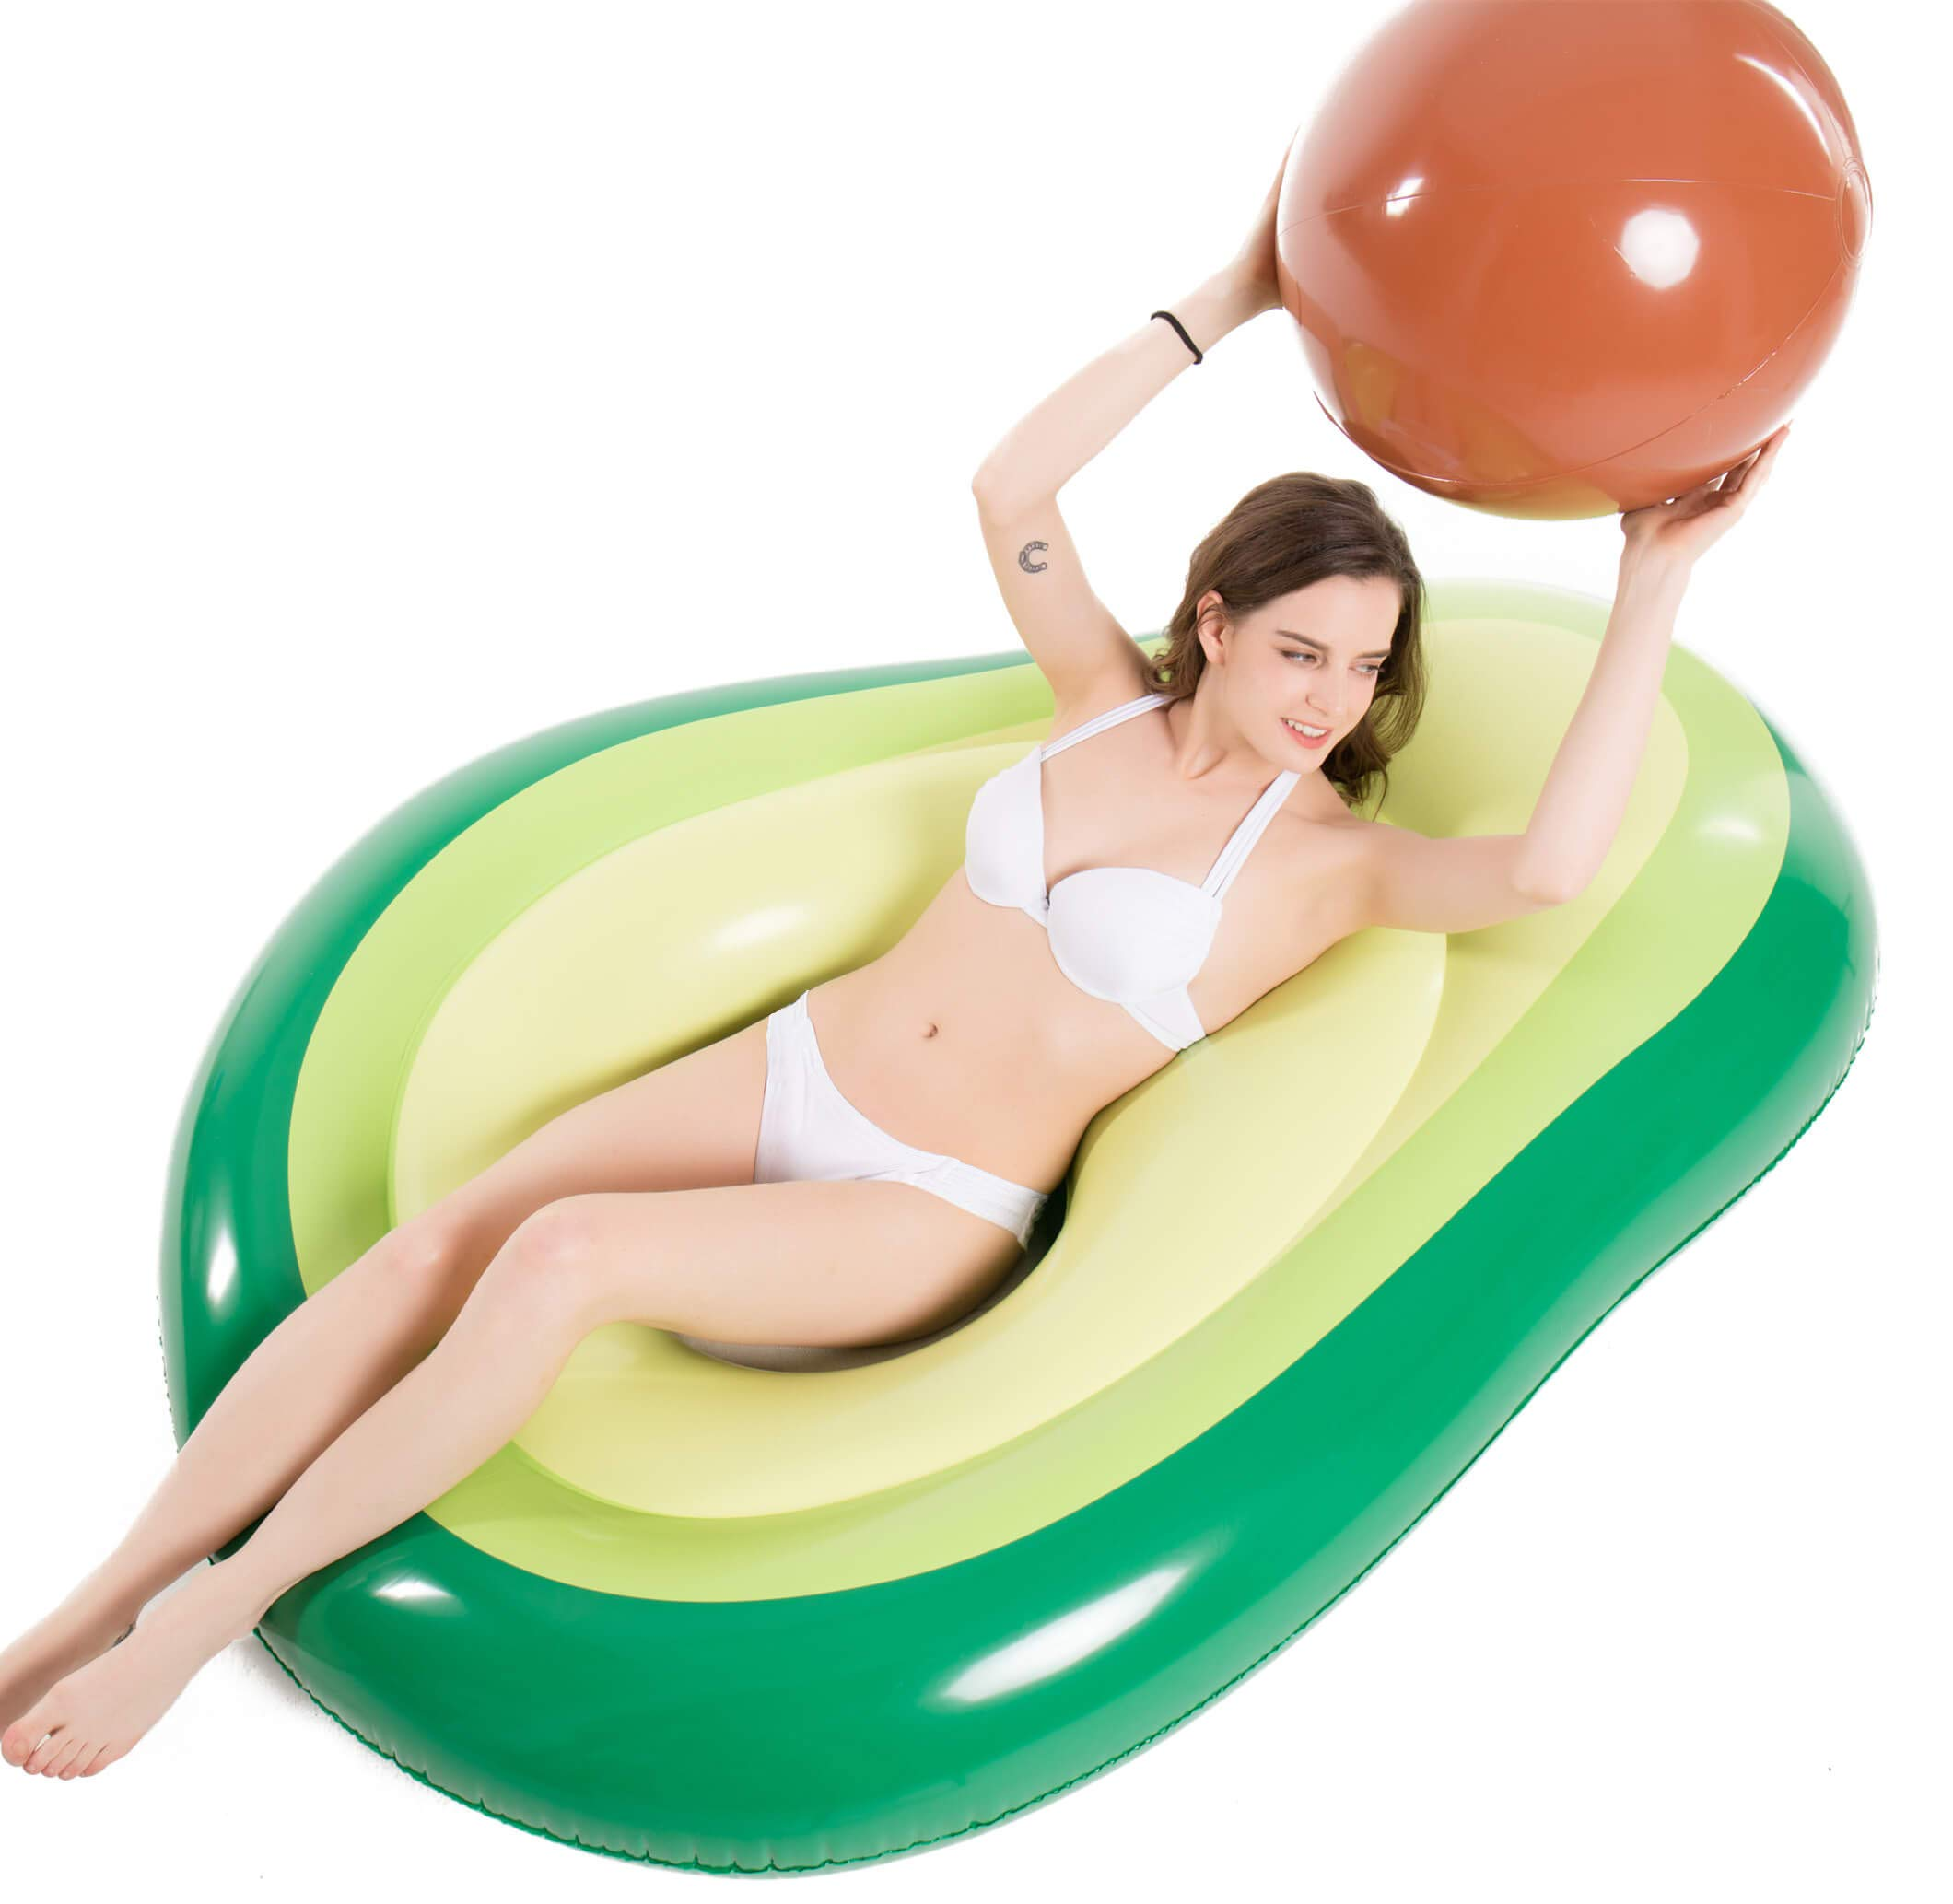 Jasonwell Inflatable Avocado Pool Float Floatie with Ball Water Fun Large Blow Up Summer Beach Swimming Floaty Party Toys Lounge Raft for Kids Adults by Jasonwell